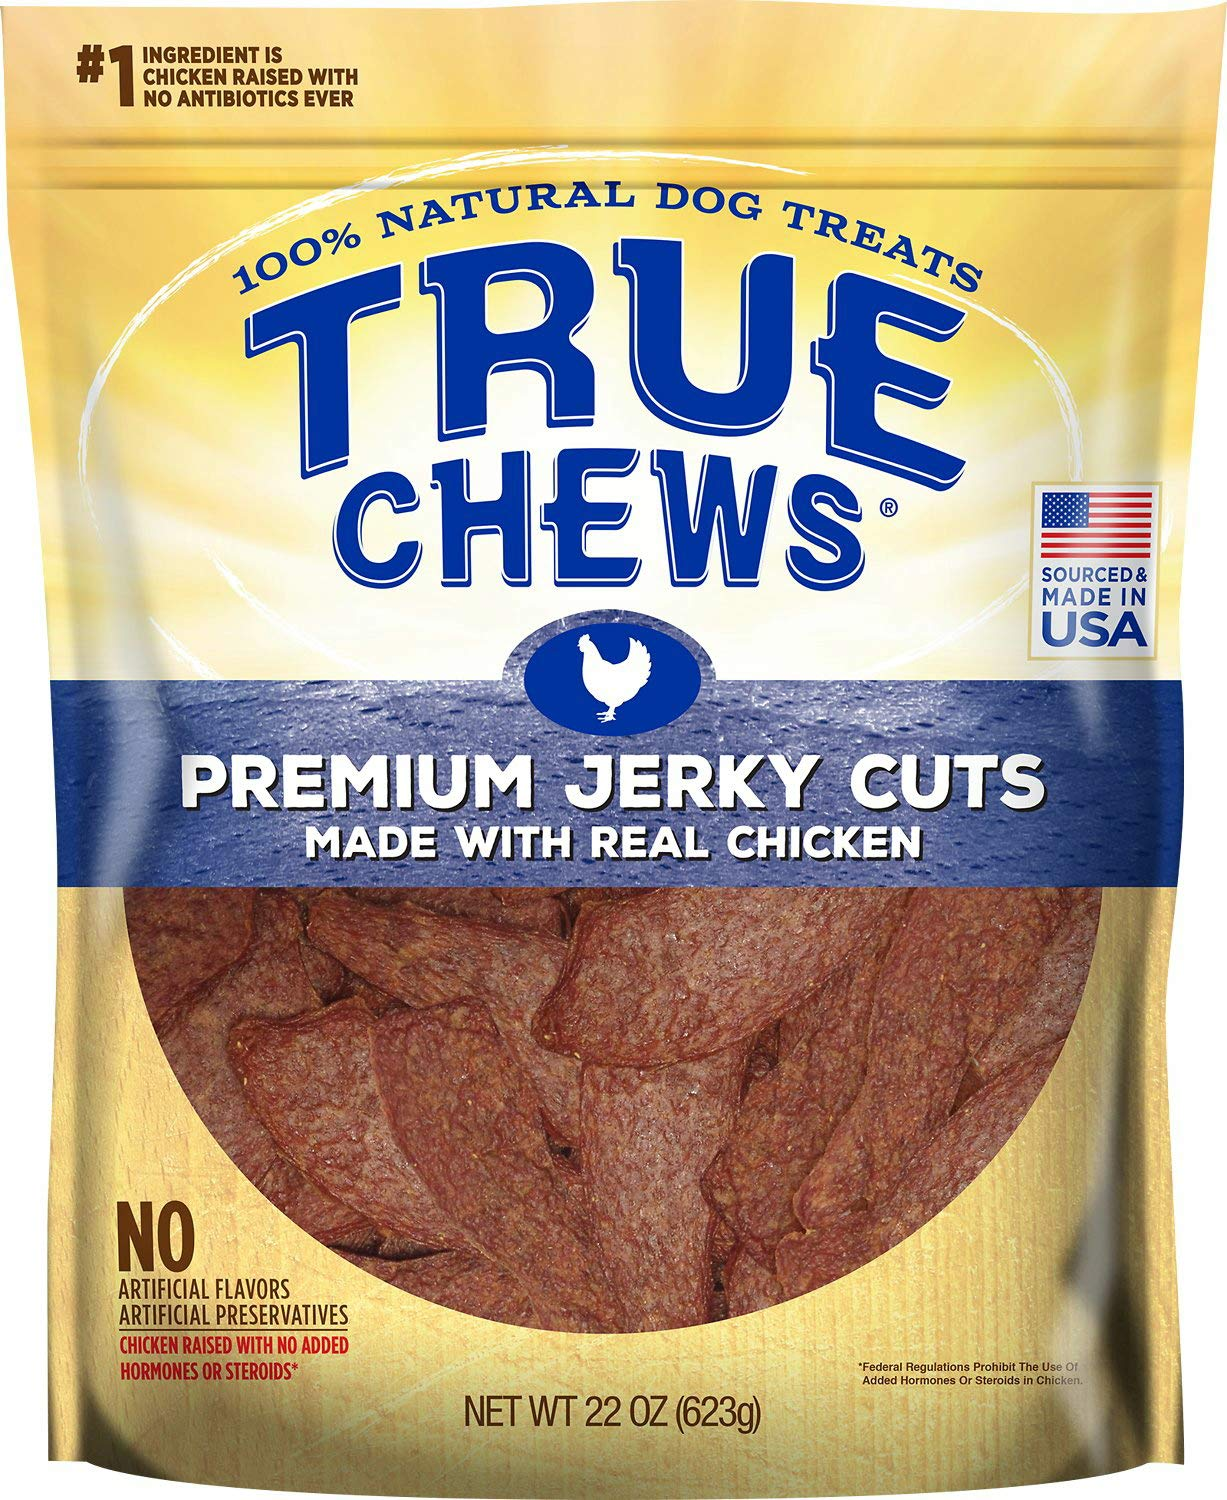 True Chews Tyson Premium Jerky Cuts Dog Treats, Variety Count, 22 Ounce, 2 Count, 8 Pack